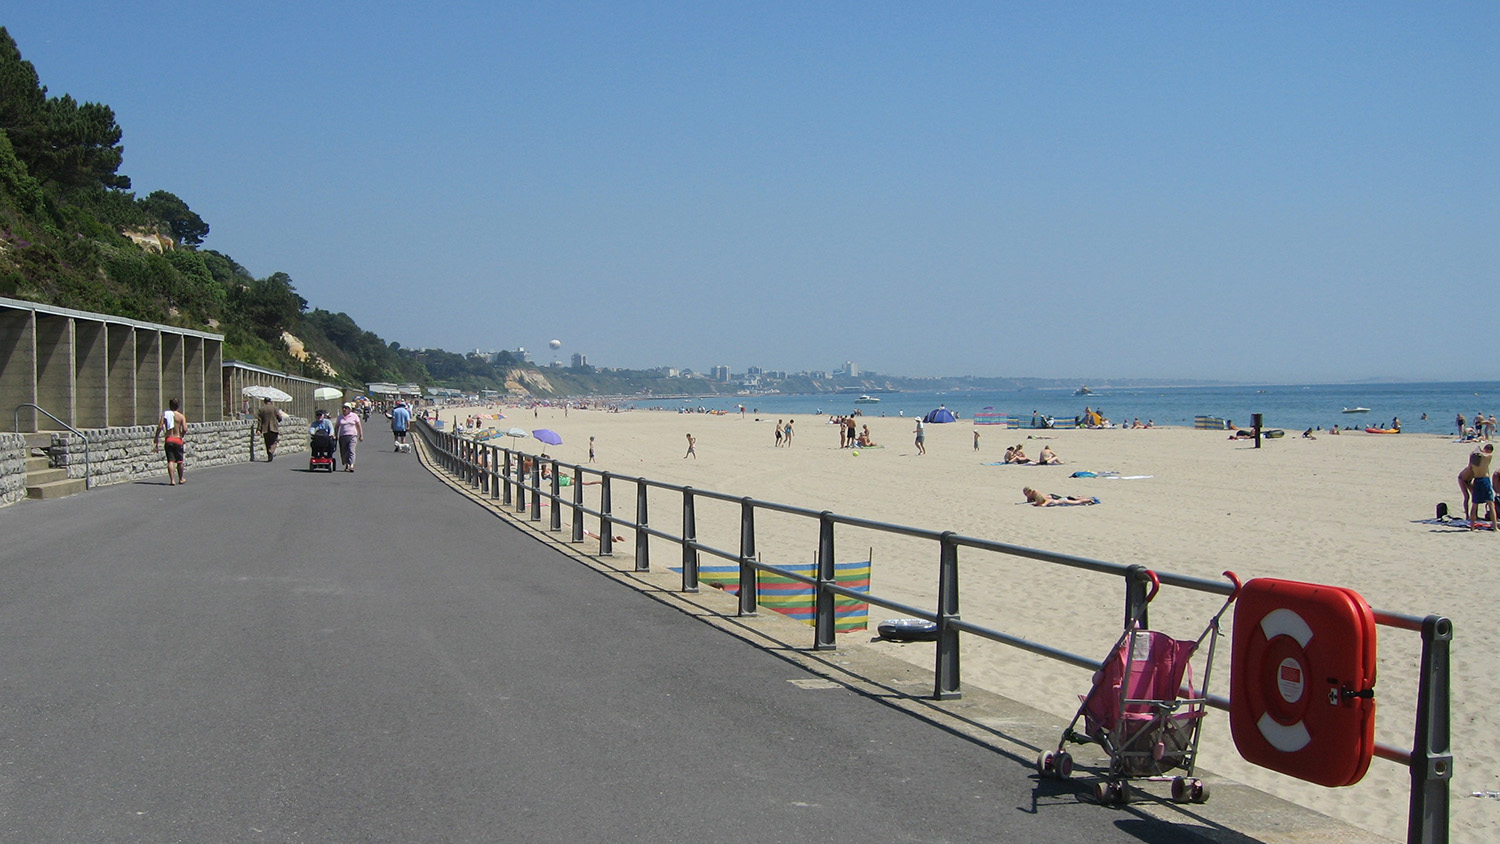 Canford Cliffs Beach at Poole in Dorset is an RNLI lifeguarded beach.